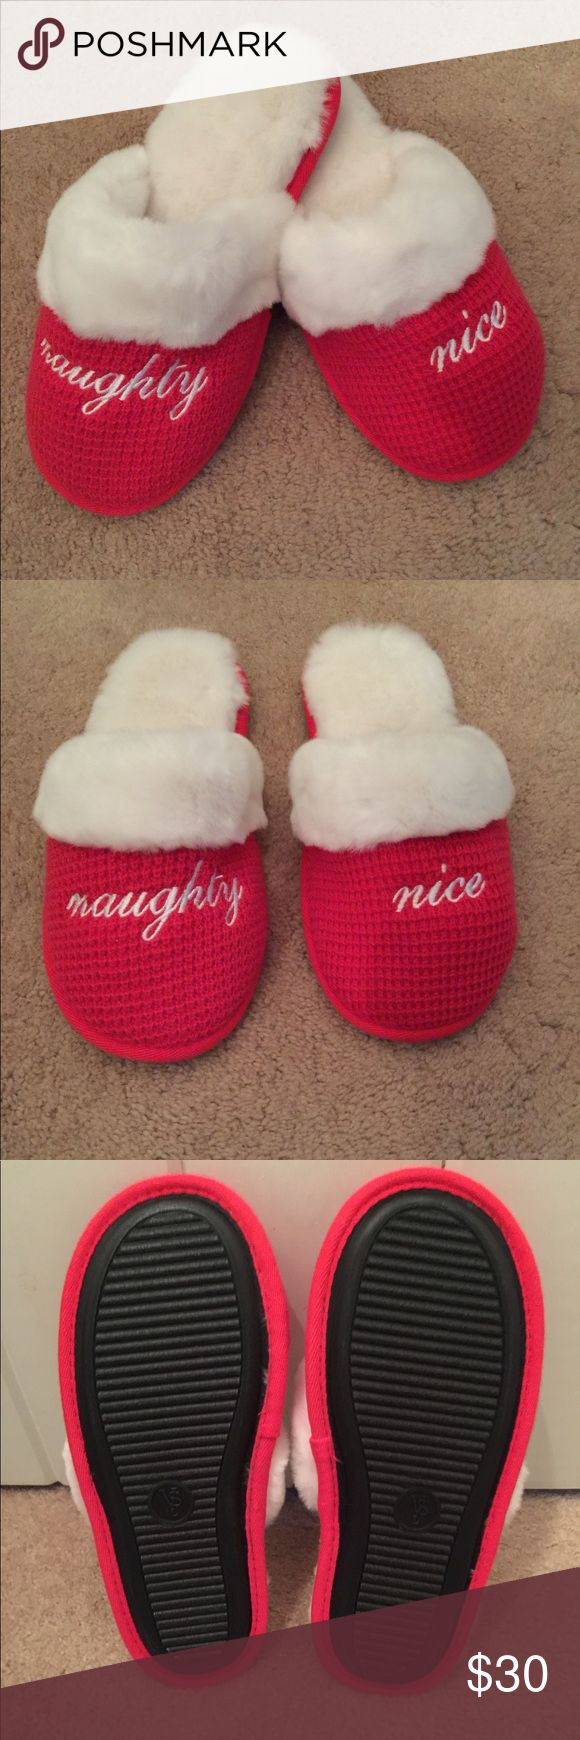 🆕  Victoria's Secret Naughty Nice slippers Victoria's Secret Naughty & Nice slippers NWOT waffle knit slip on style cozy fur lining & trim rubber sole never been worn Victoria's Secret Shoes Slippers